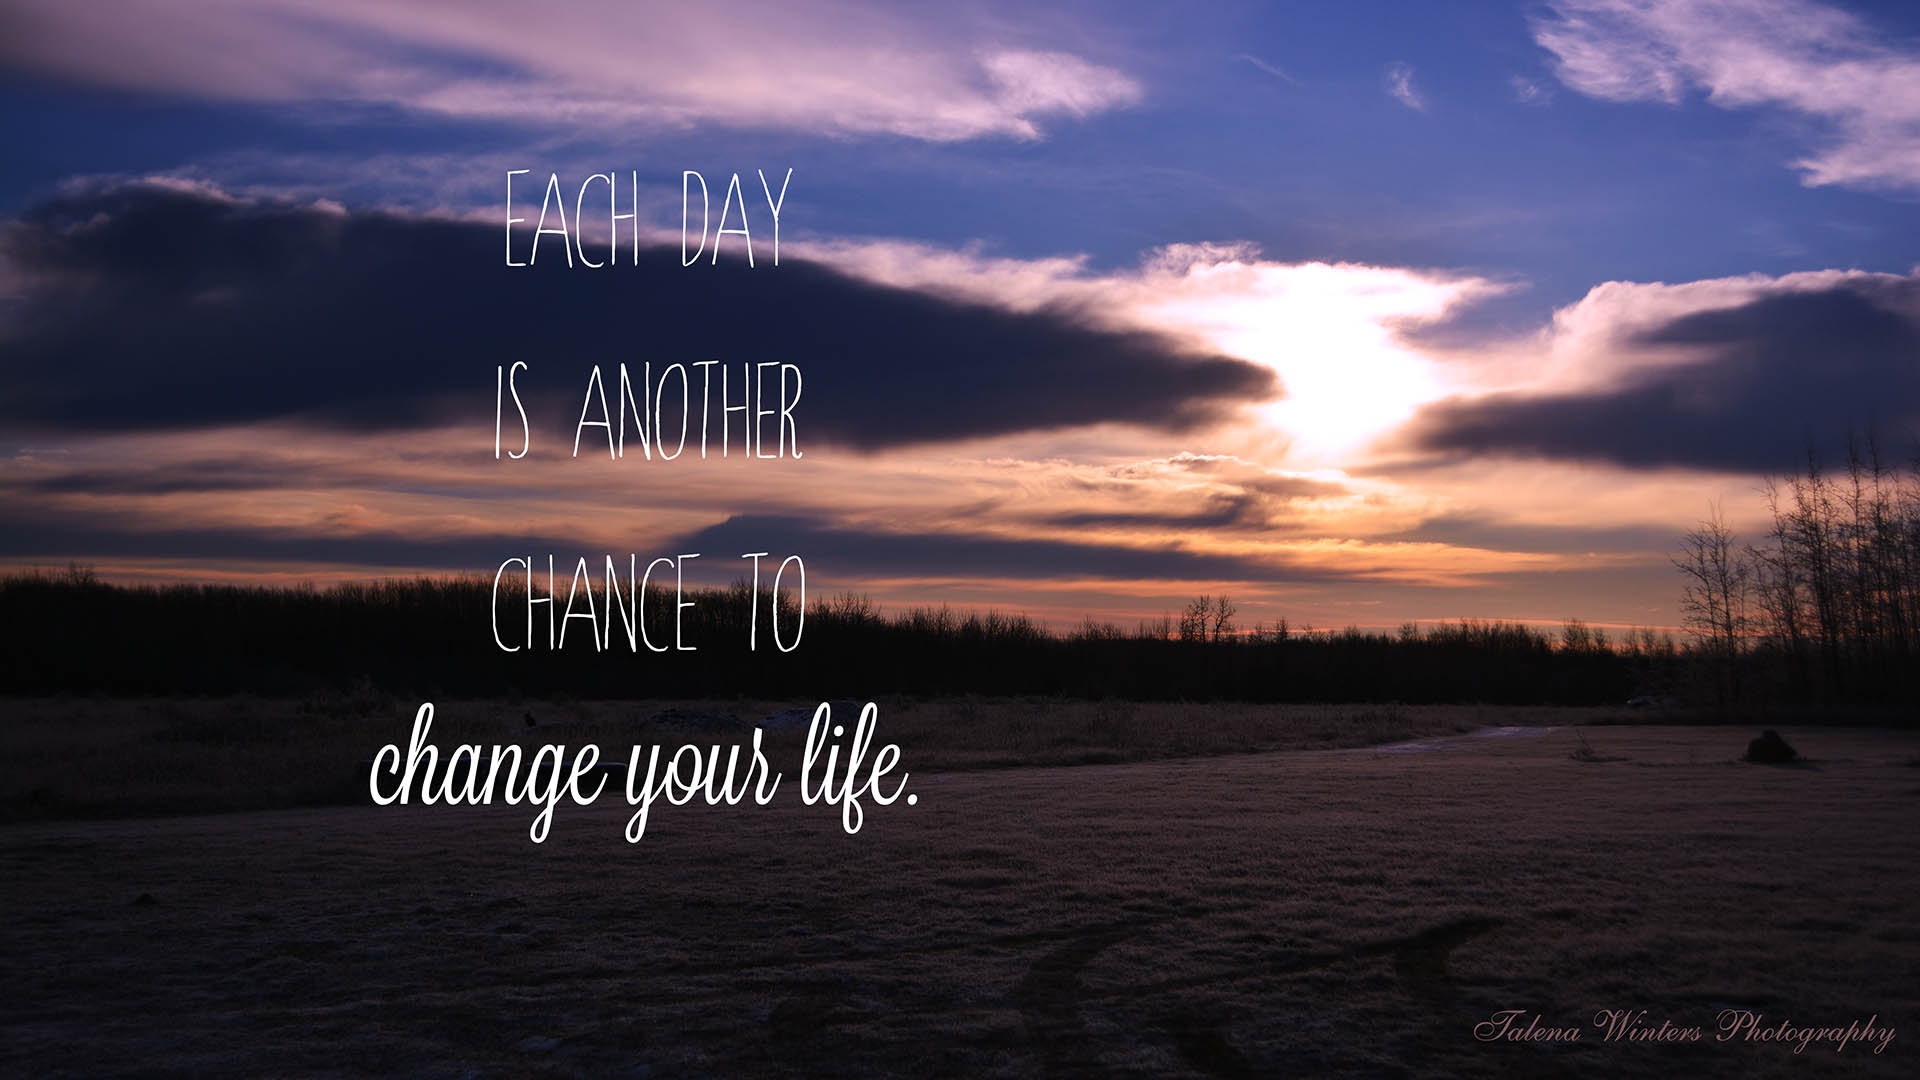 """Each day is another chance to change your life."" Desktop Wallpaper from www.talenawinters.com. Resolution: 1920x1080"